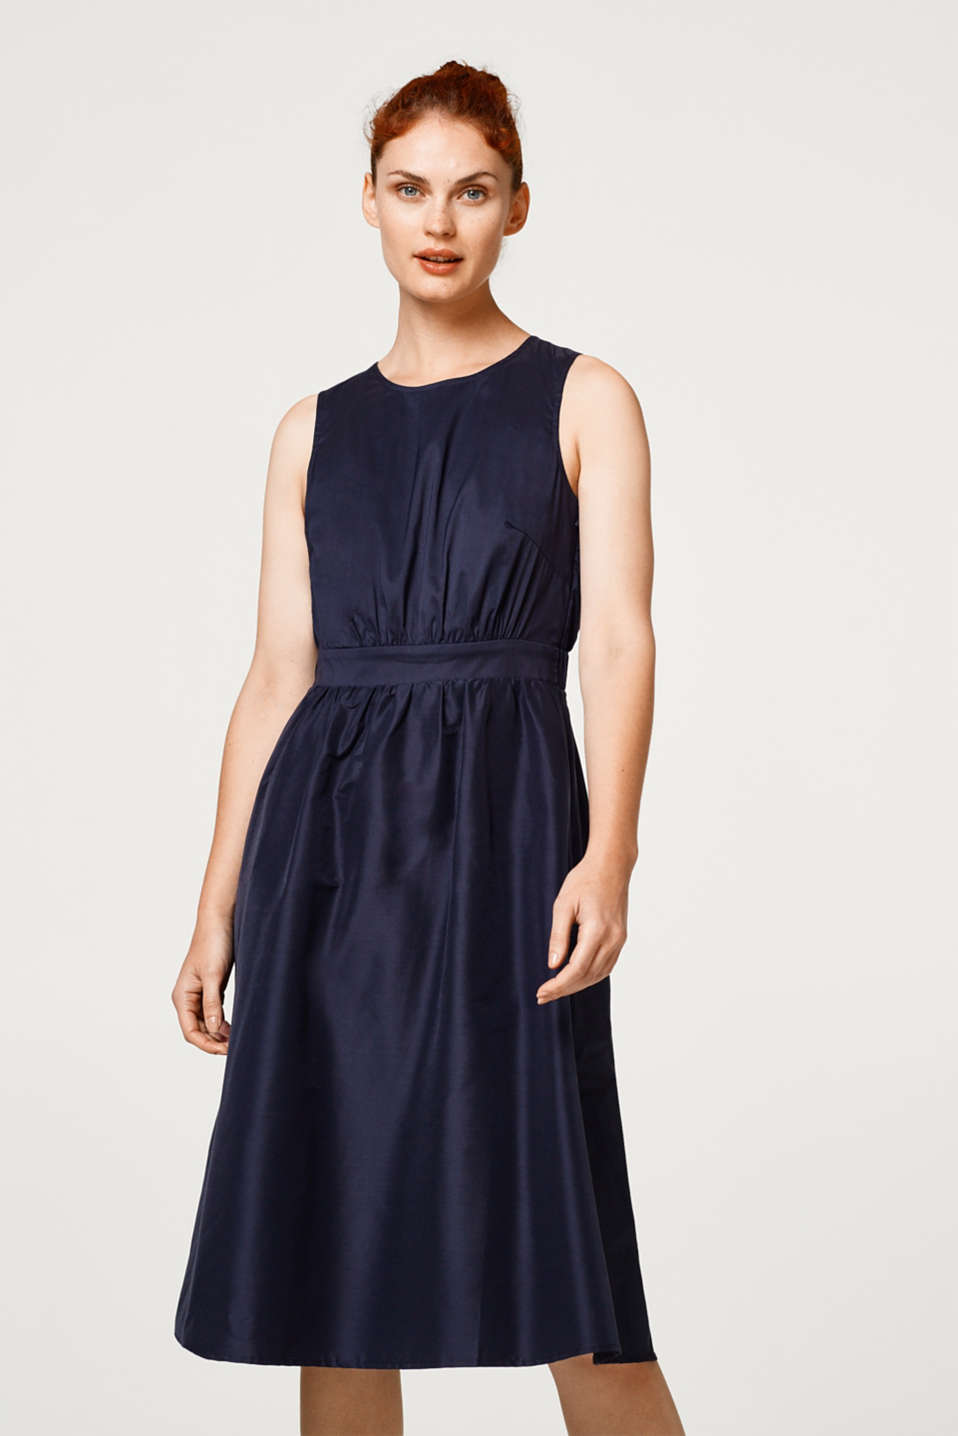 Esprit - SMART SHINE mix + match dress with a lace back